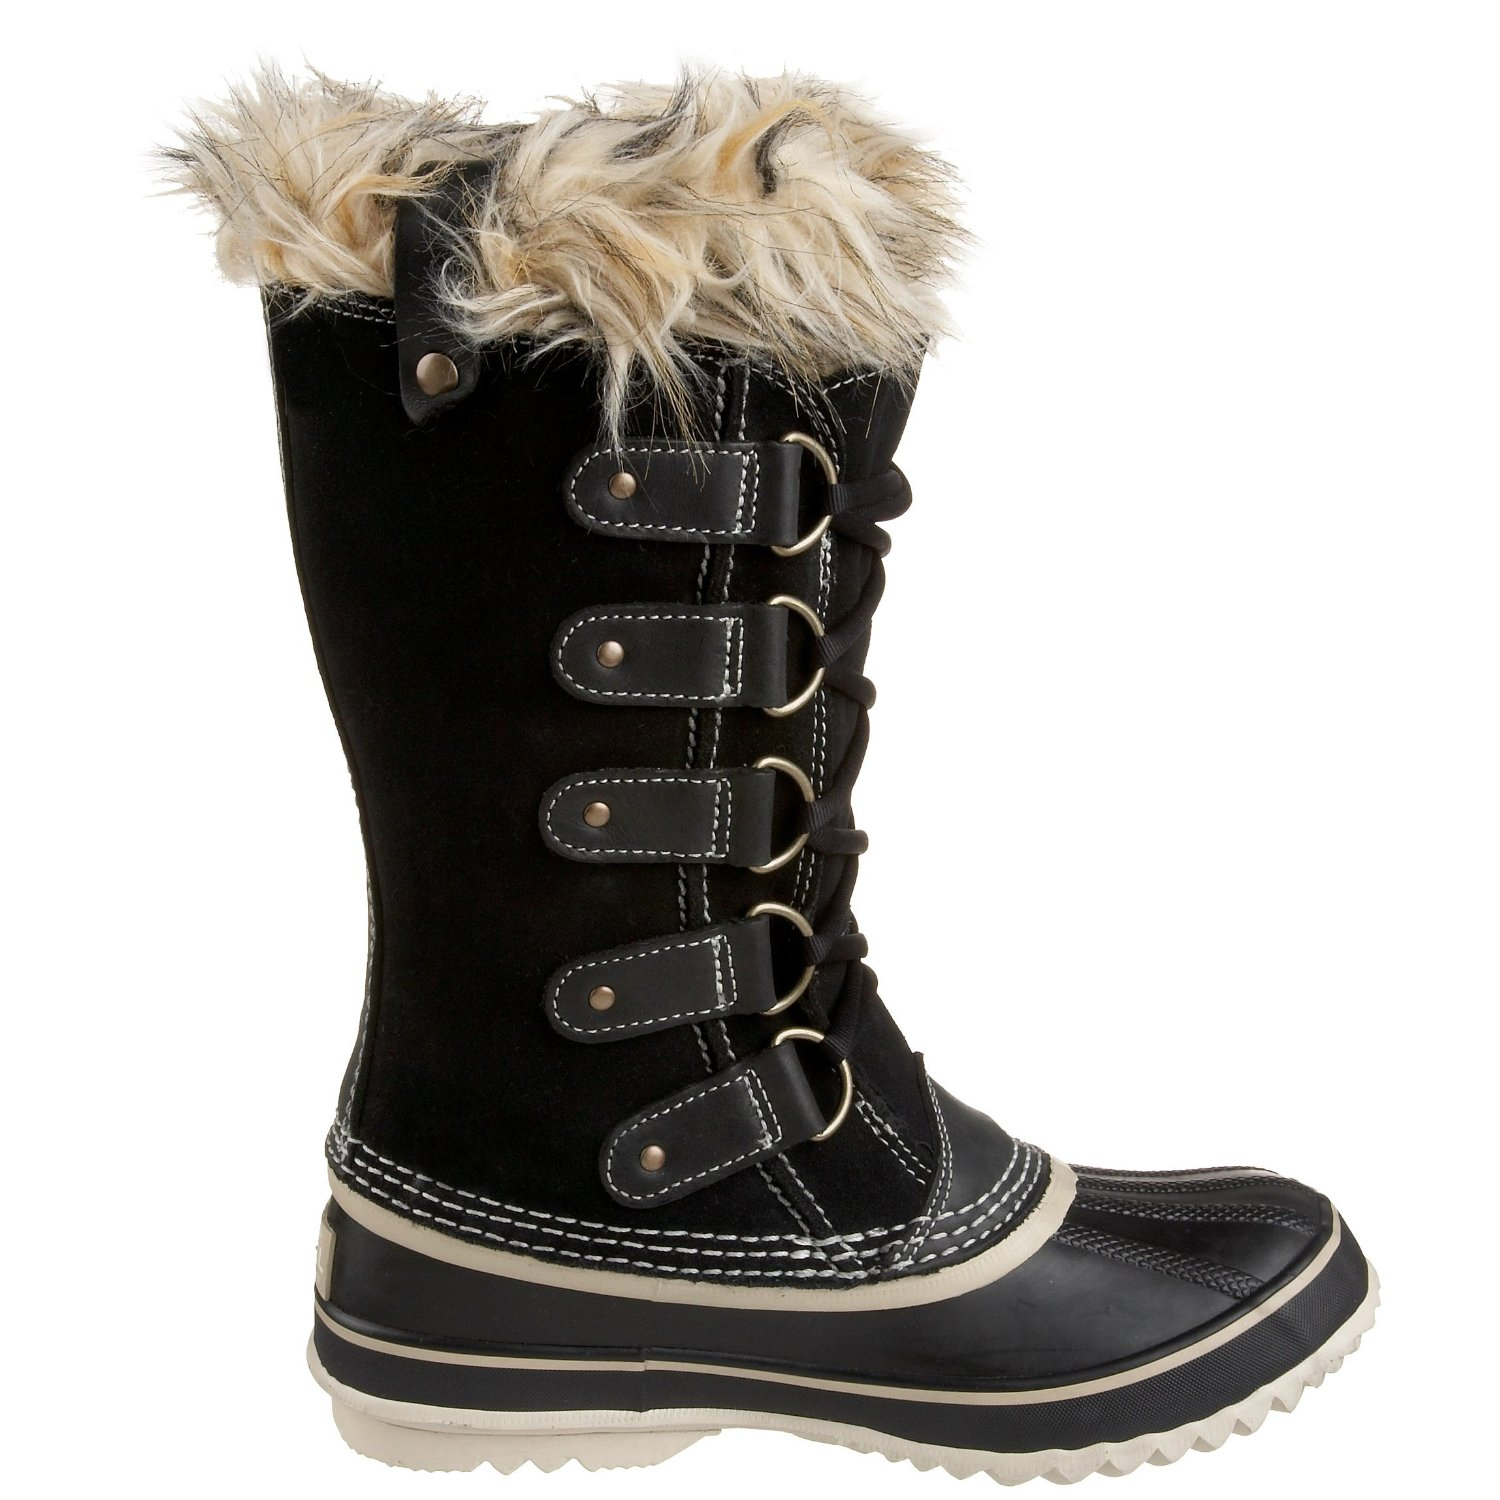 Review of Sorel Women's Joan Of Arctic Boot